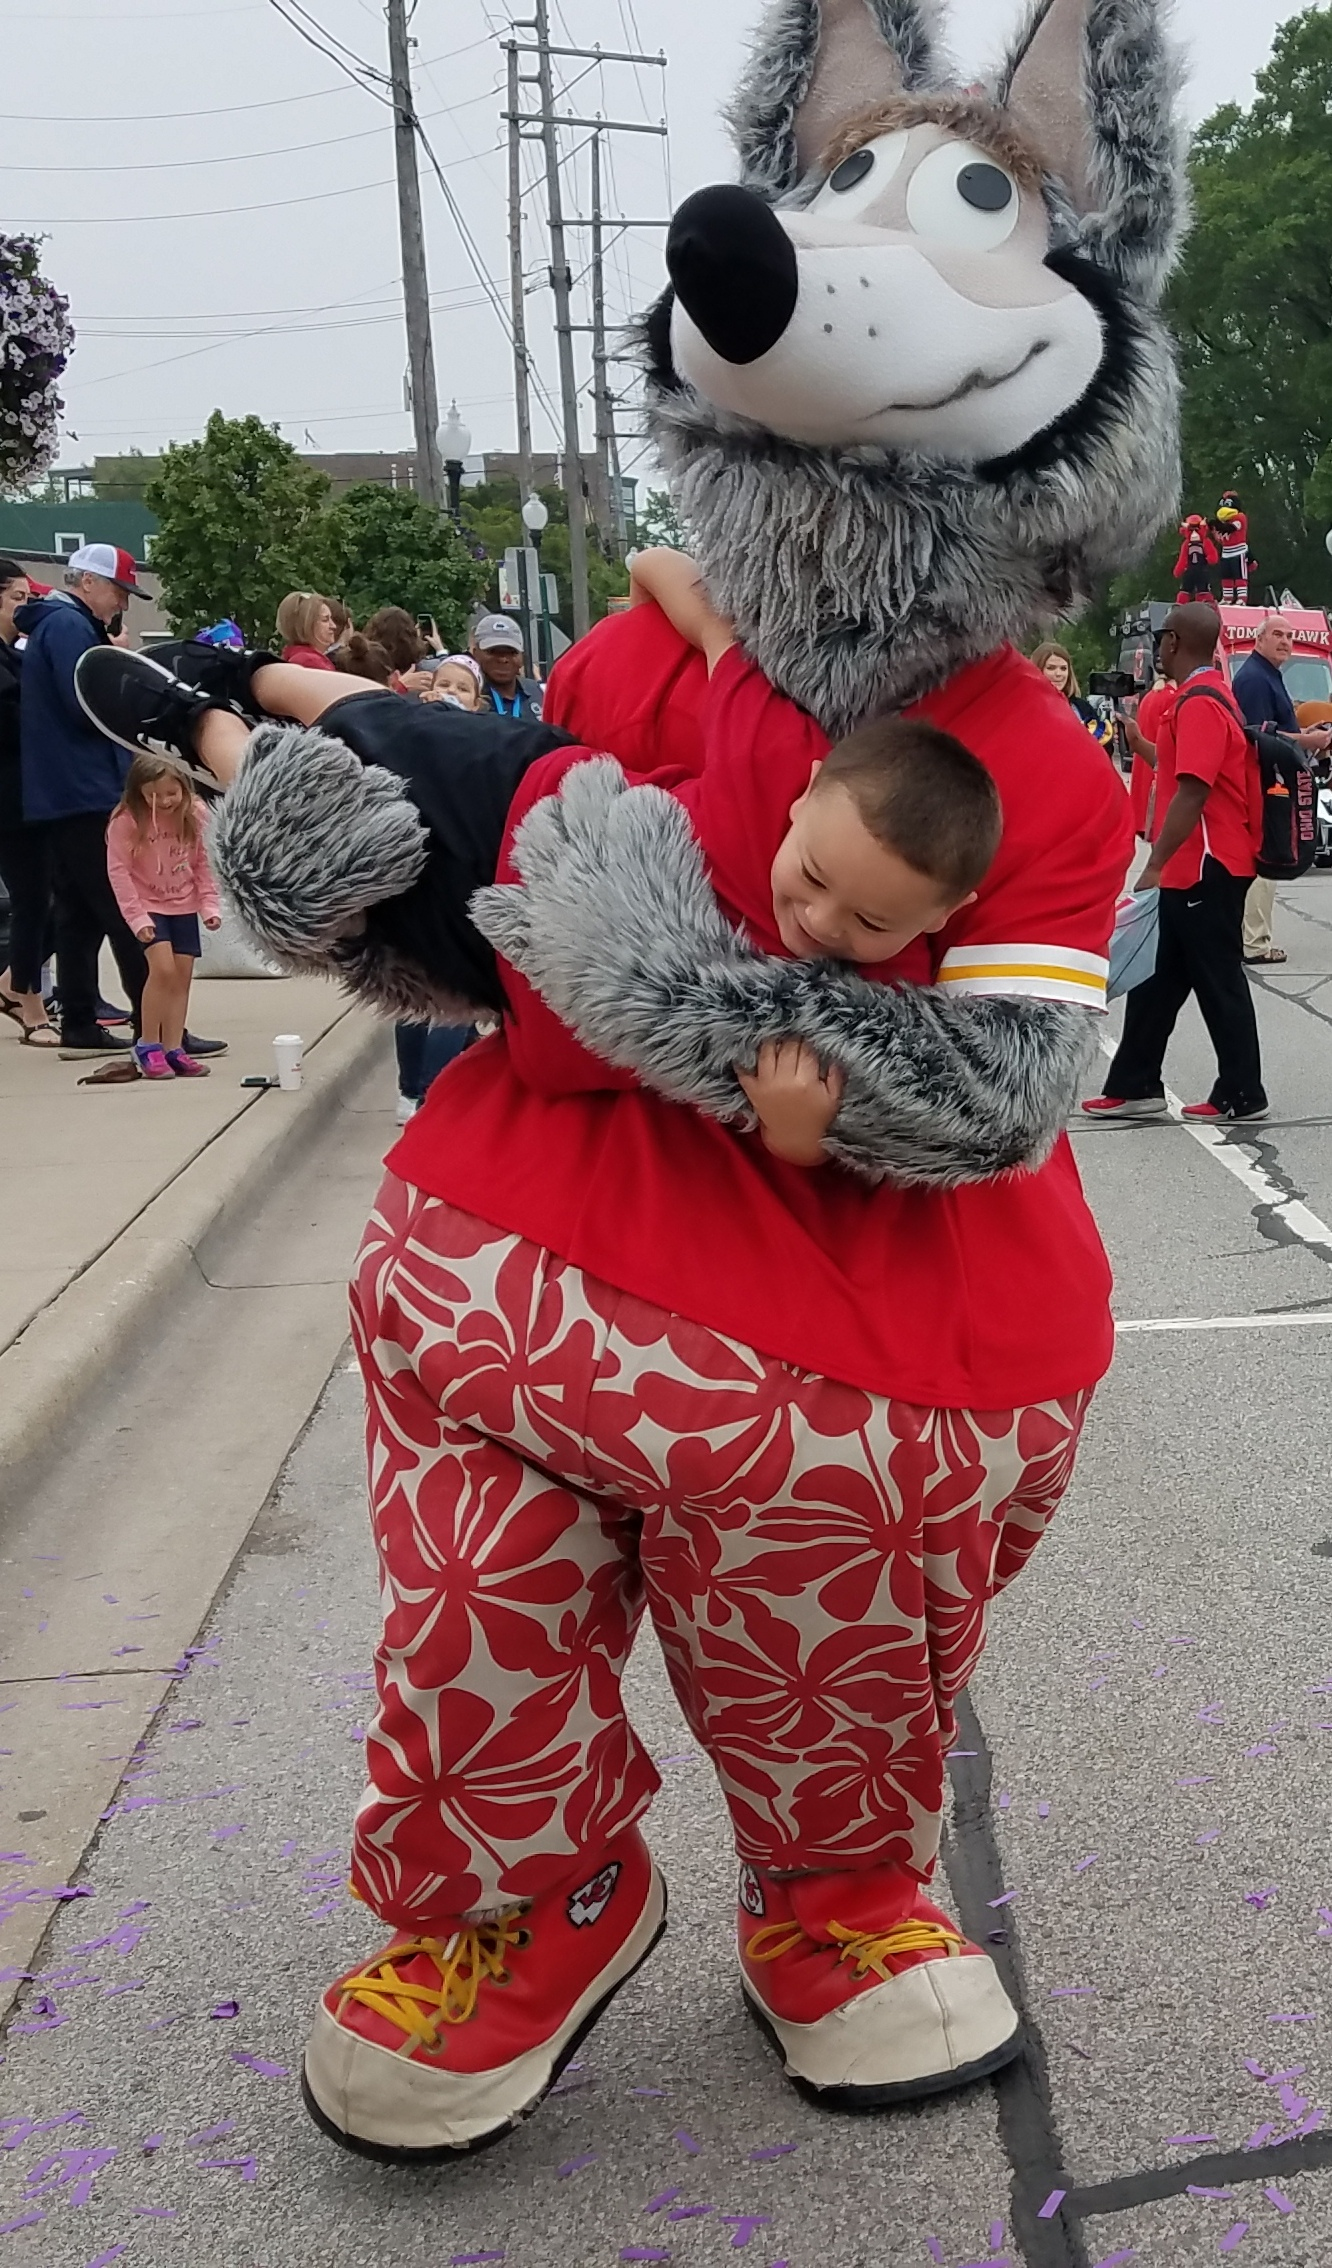 KC Wolf, the mascot of the Kansas City Chiefs, gives a young spectator along the parade route a big hug during the first-ever Mascot Parade in Whiting.